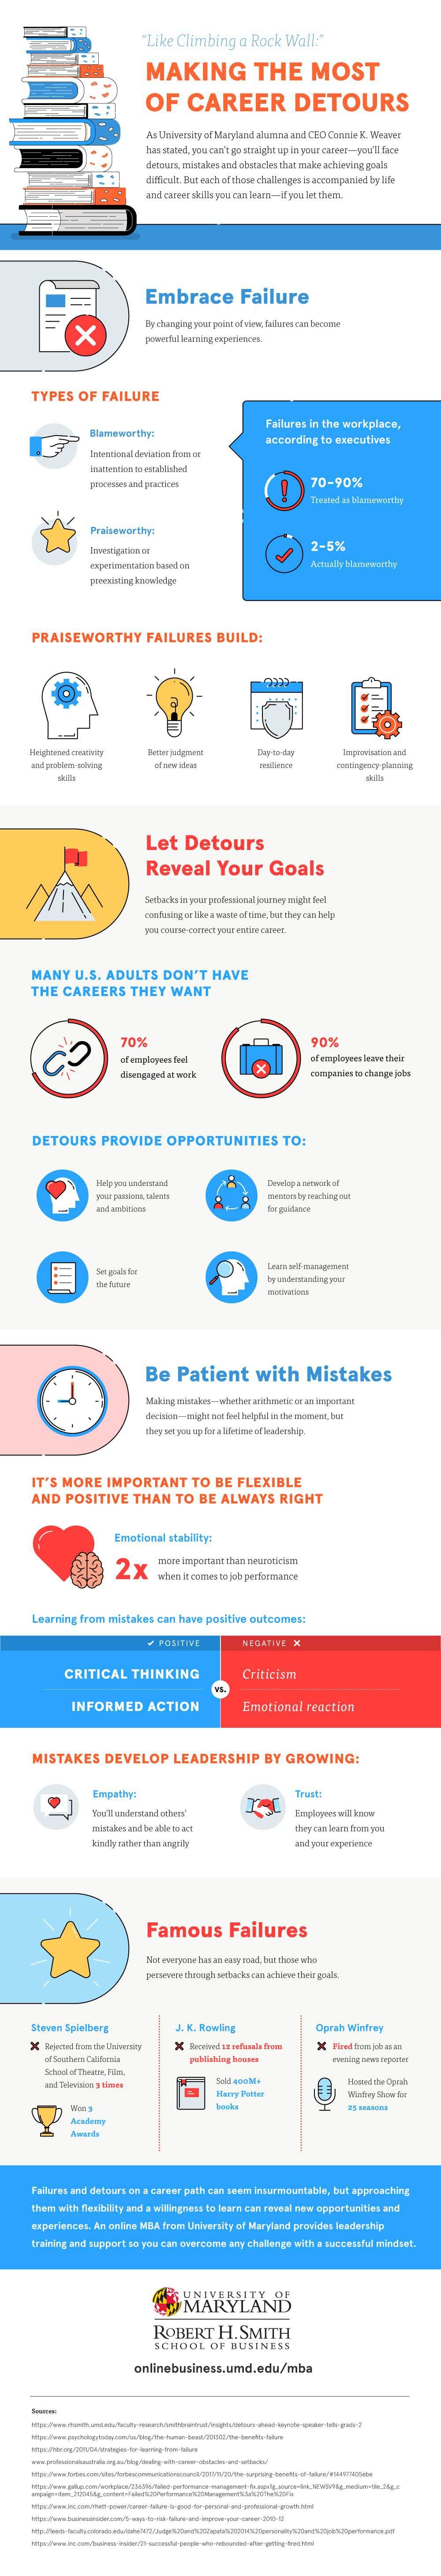 An infographic about how workplace detours and failures can prepare leaders for success by the UMD Robert H. Smith School of Business.